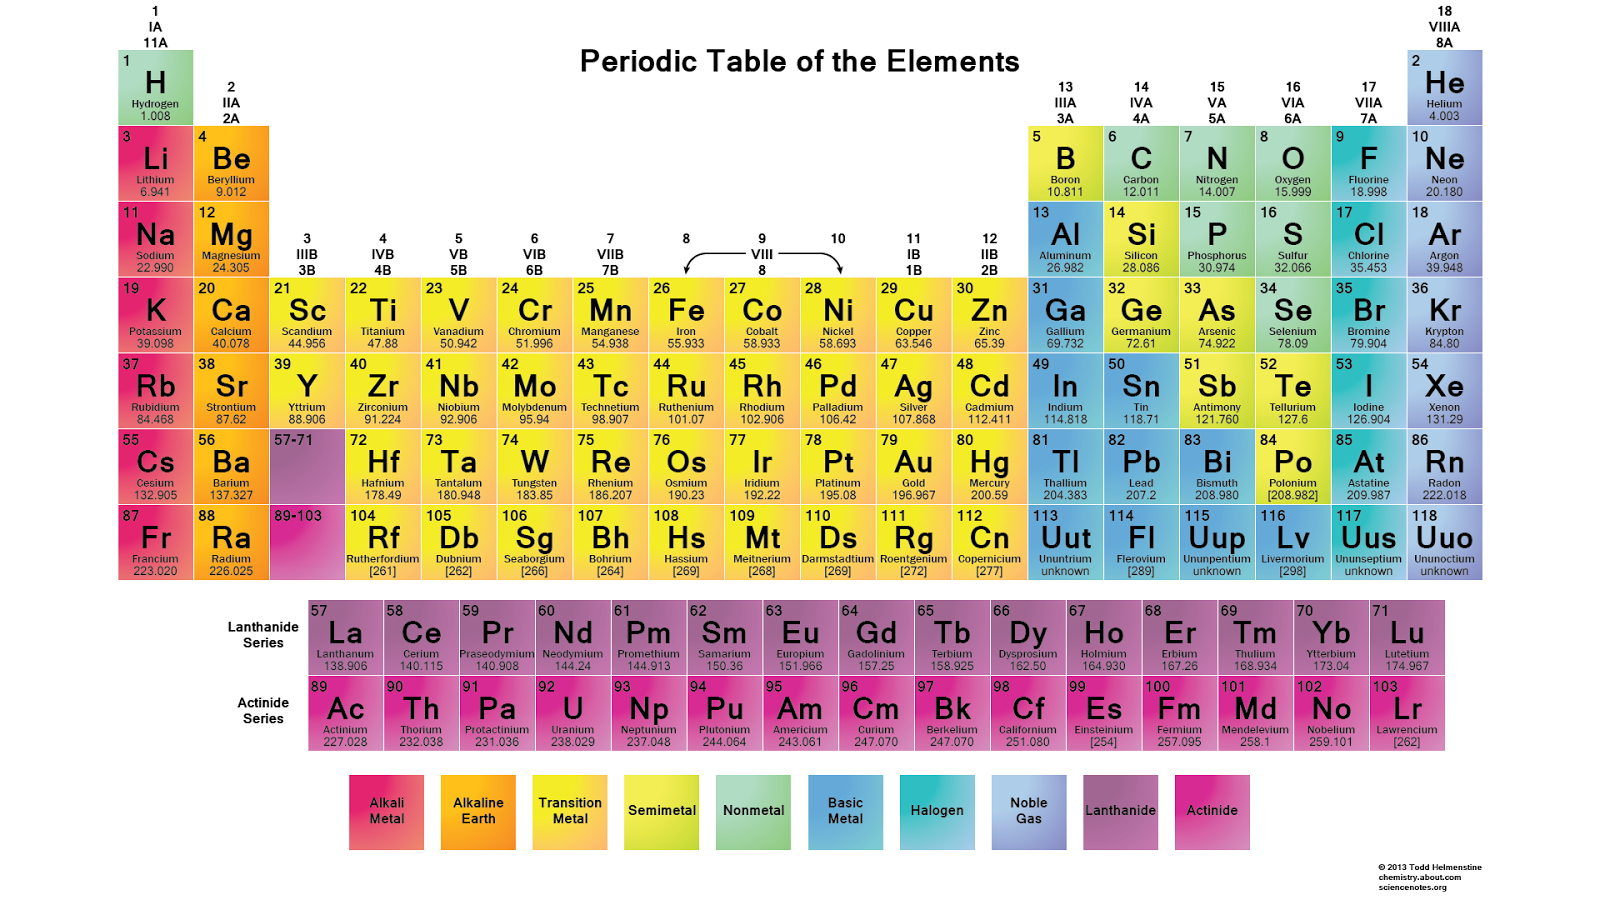 Callan periodic table images periodic table images pete mckee periodic table gallery periodic table images callan periodic table image collections periodic table images gamestrikefo Gallery